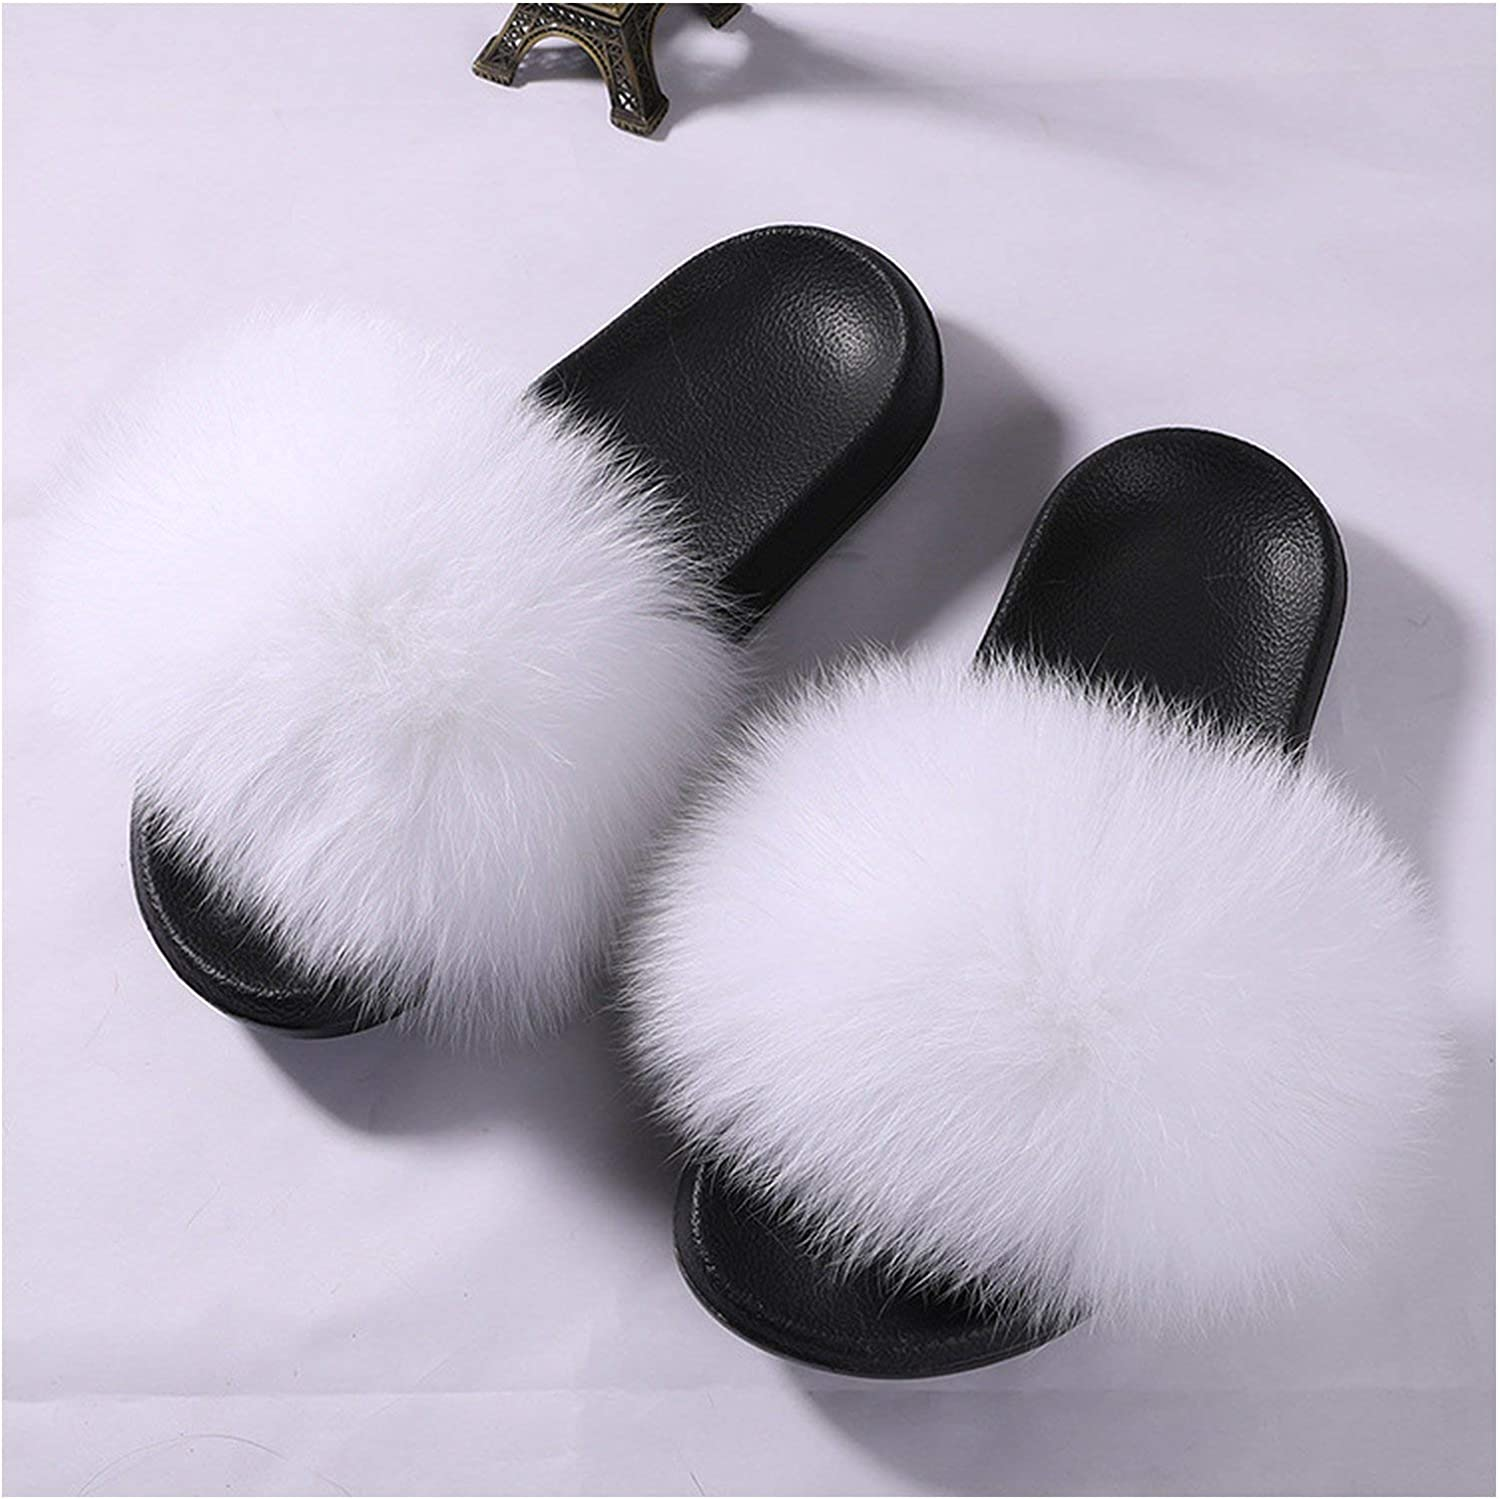 END GAME Women Fur Home Fluffy Sliders Plush Furry Summer Flats Sweet shoes Cute Pantufas